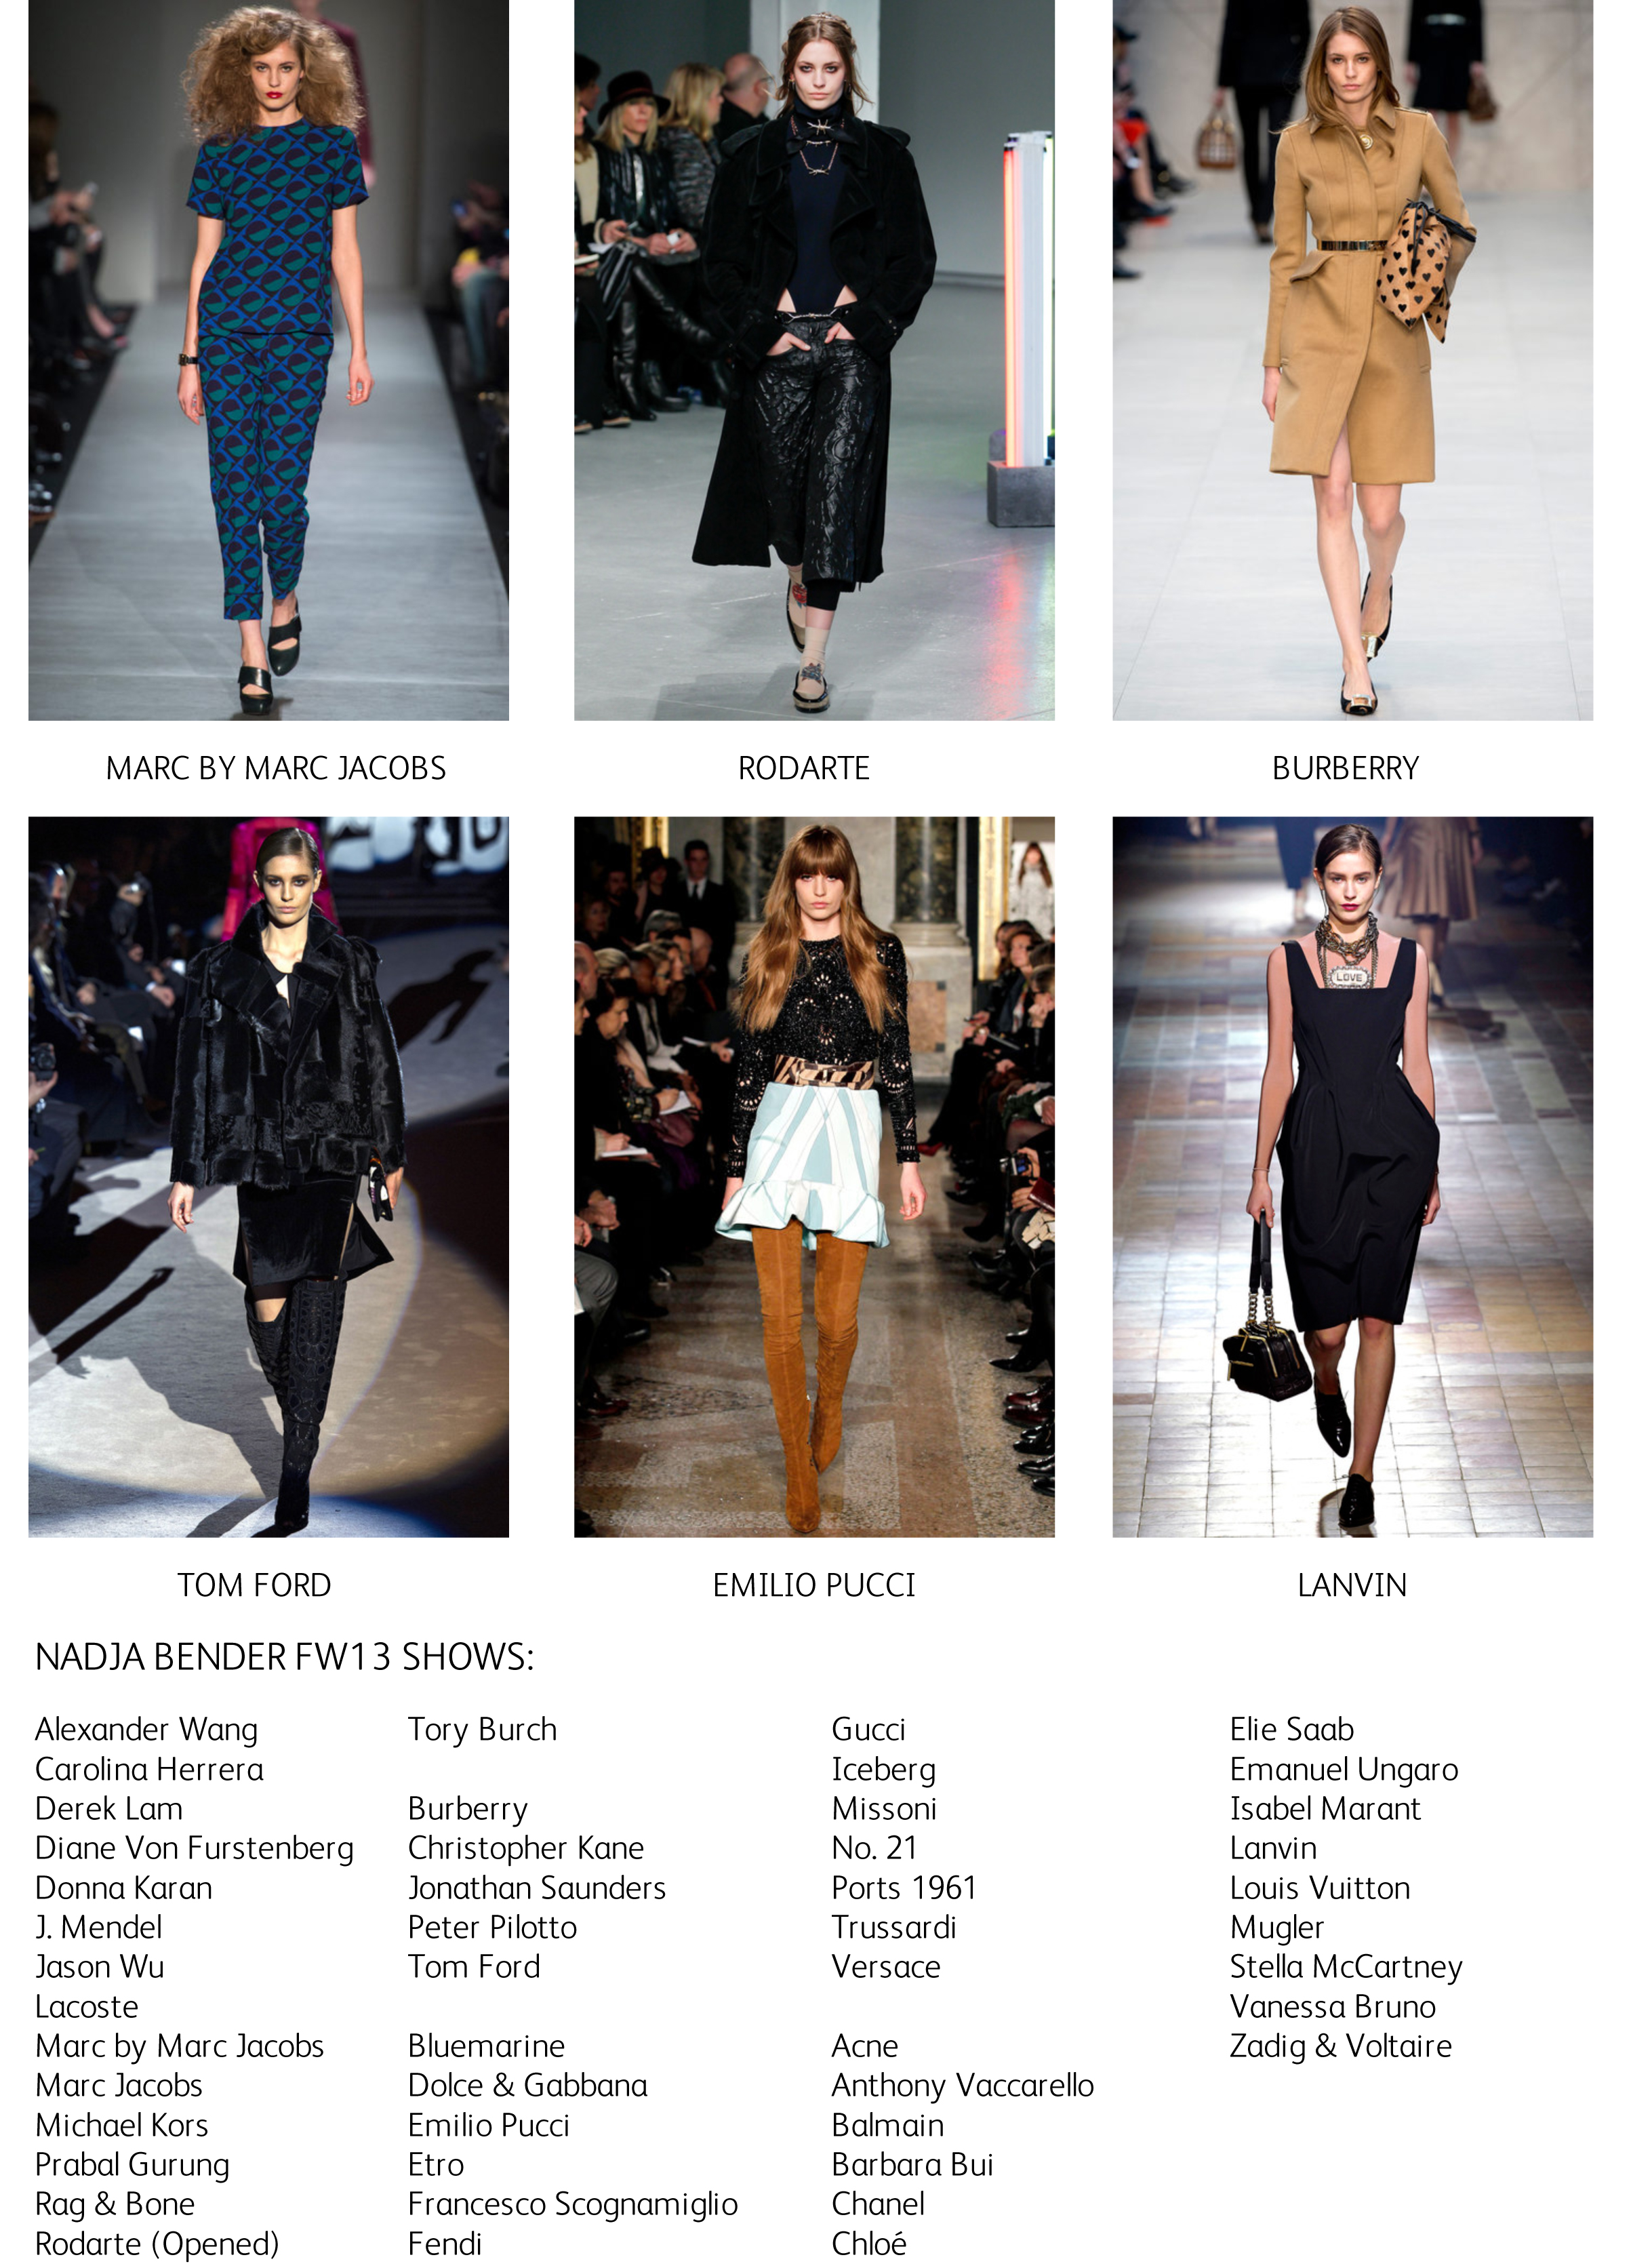 Nadja FW13 shows